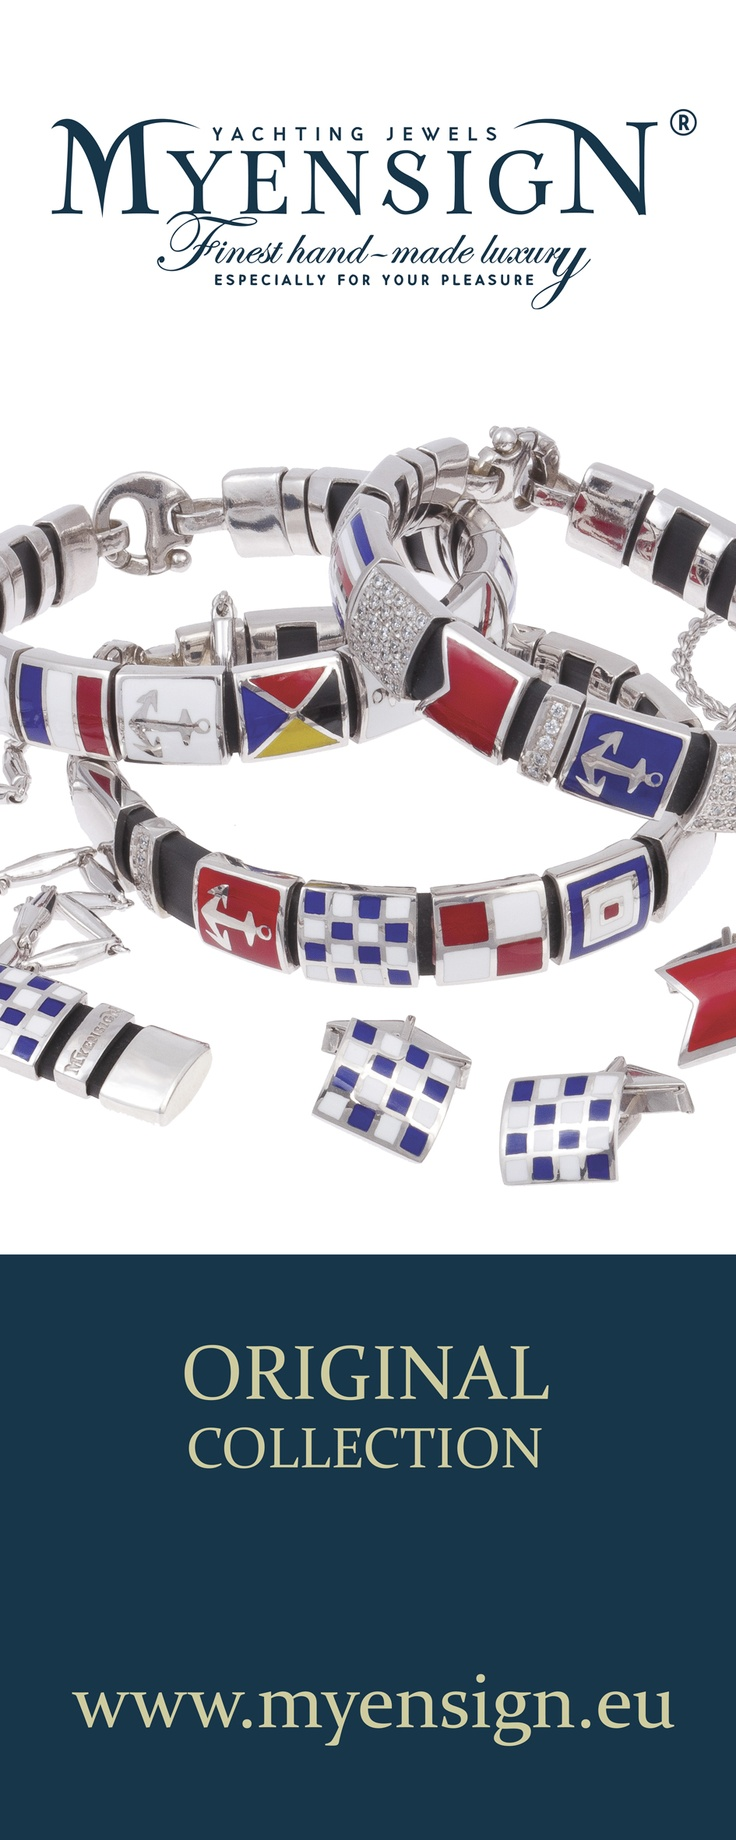 MyEnsign #Yachting # Jewels  Original Collection